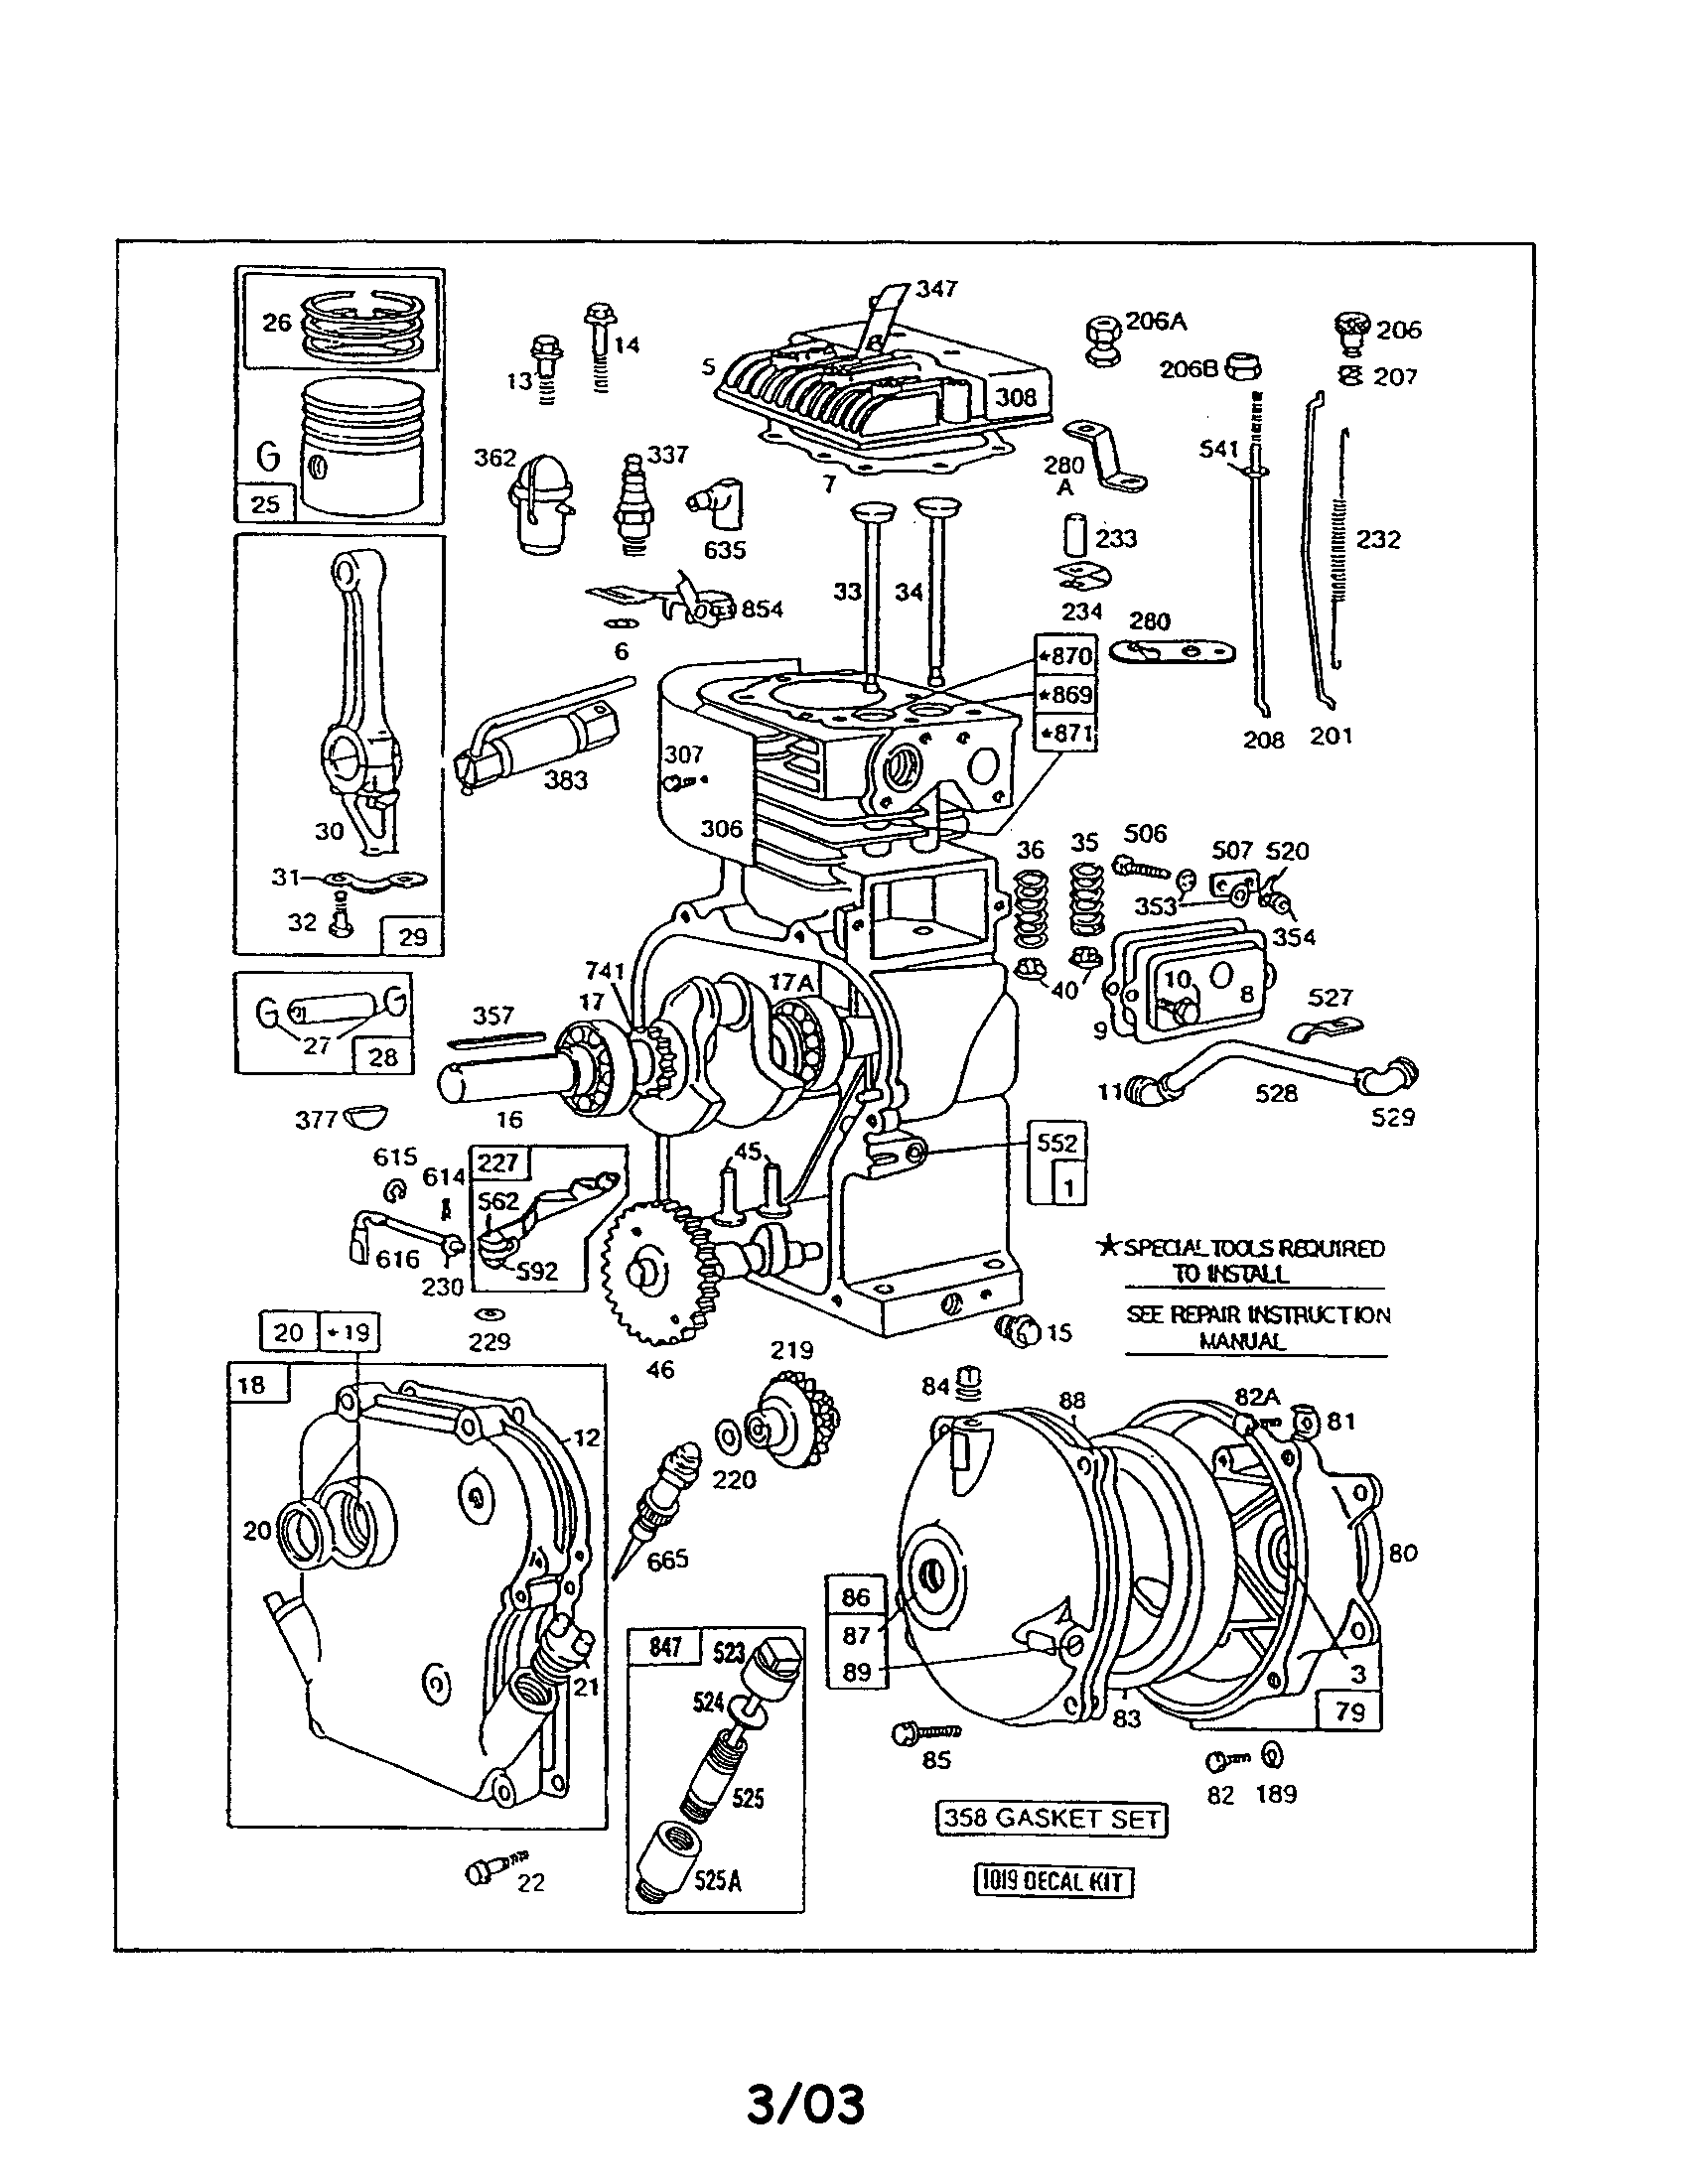 Briggs & Stratton 130200 TO 130299 (1575, 1601, 1602) cylinder head/crankcase/gearcase diagram